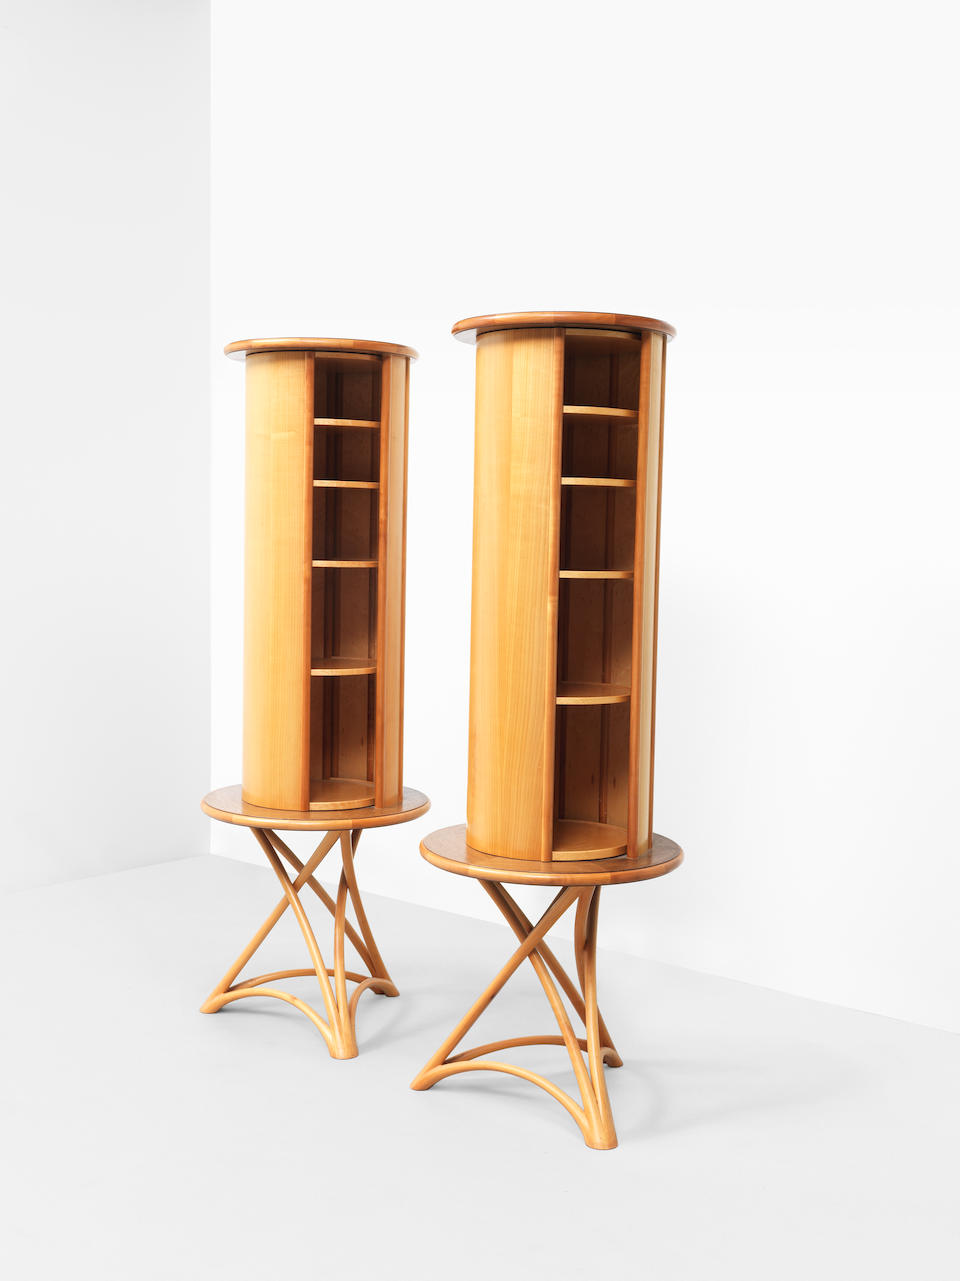 John Makepeace OBE Unique pair of cylindrical and rotating cabinets, designed for a private commission, London, 1985-1986